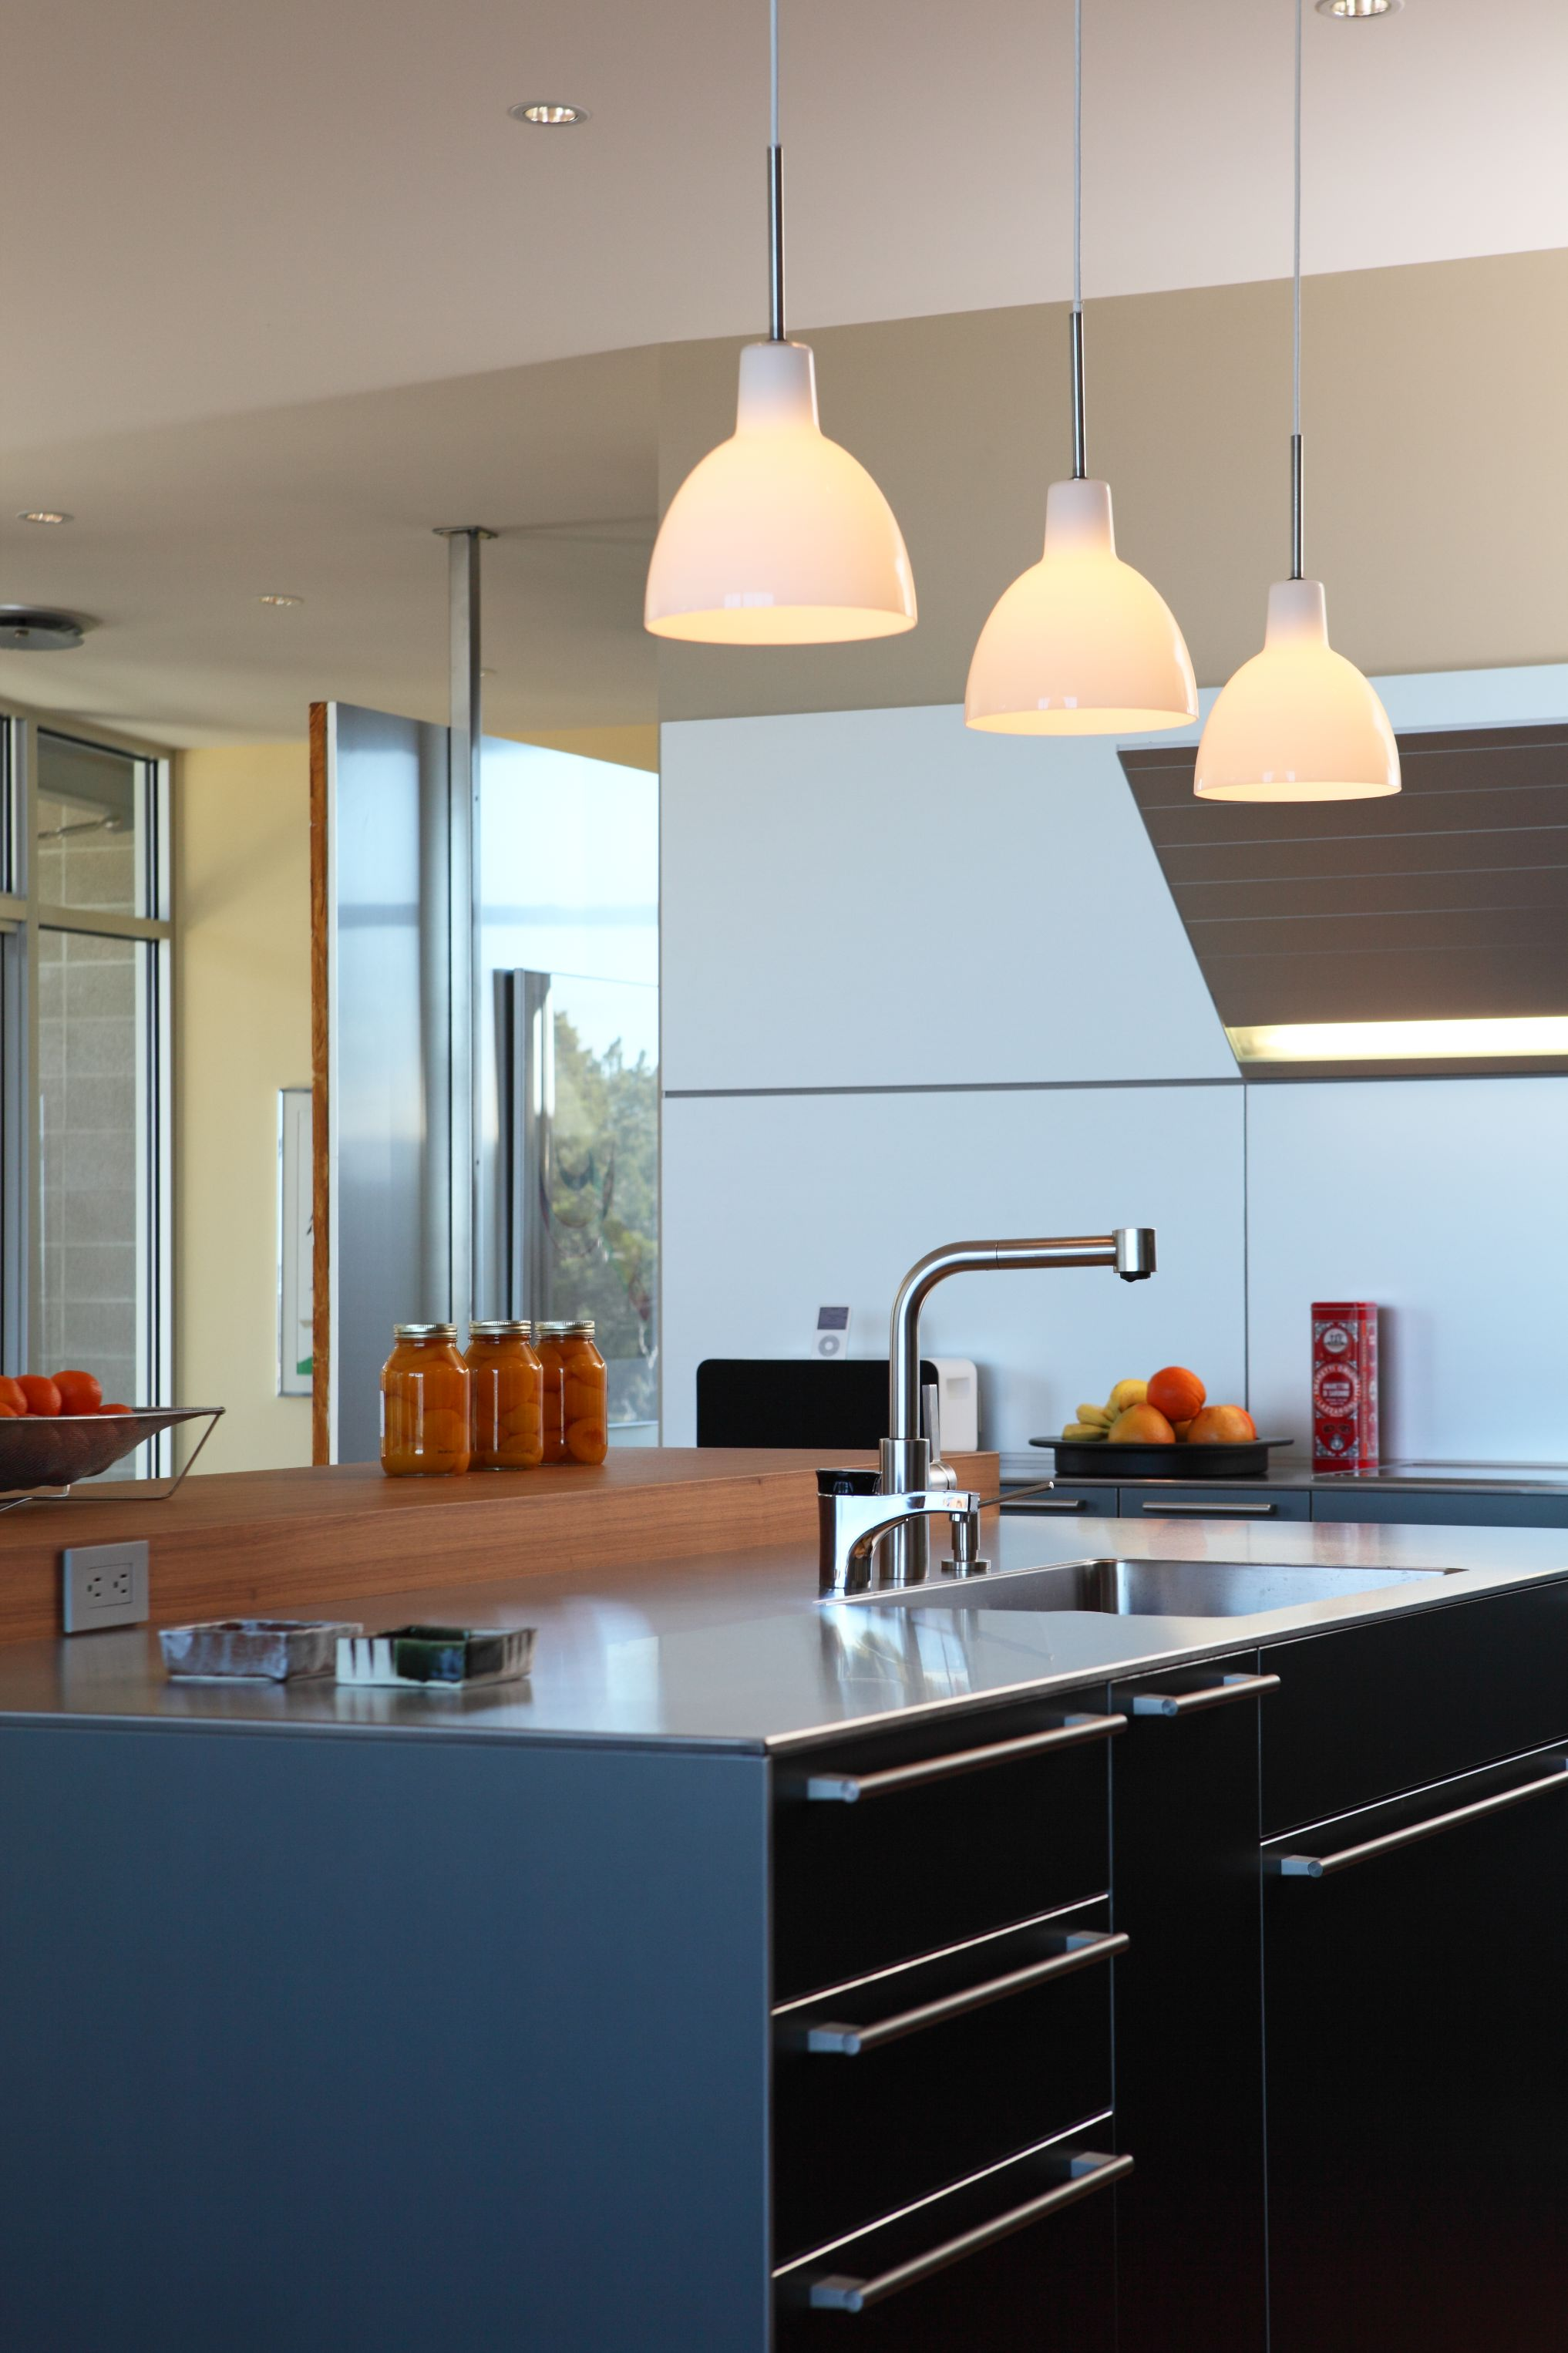 Louis Poulsen lighting provides beauty and utility to this space.